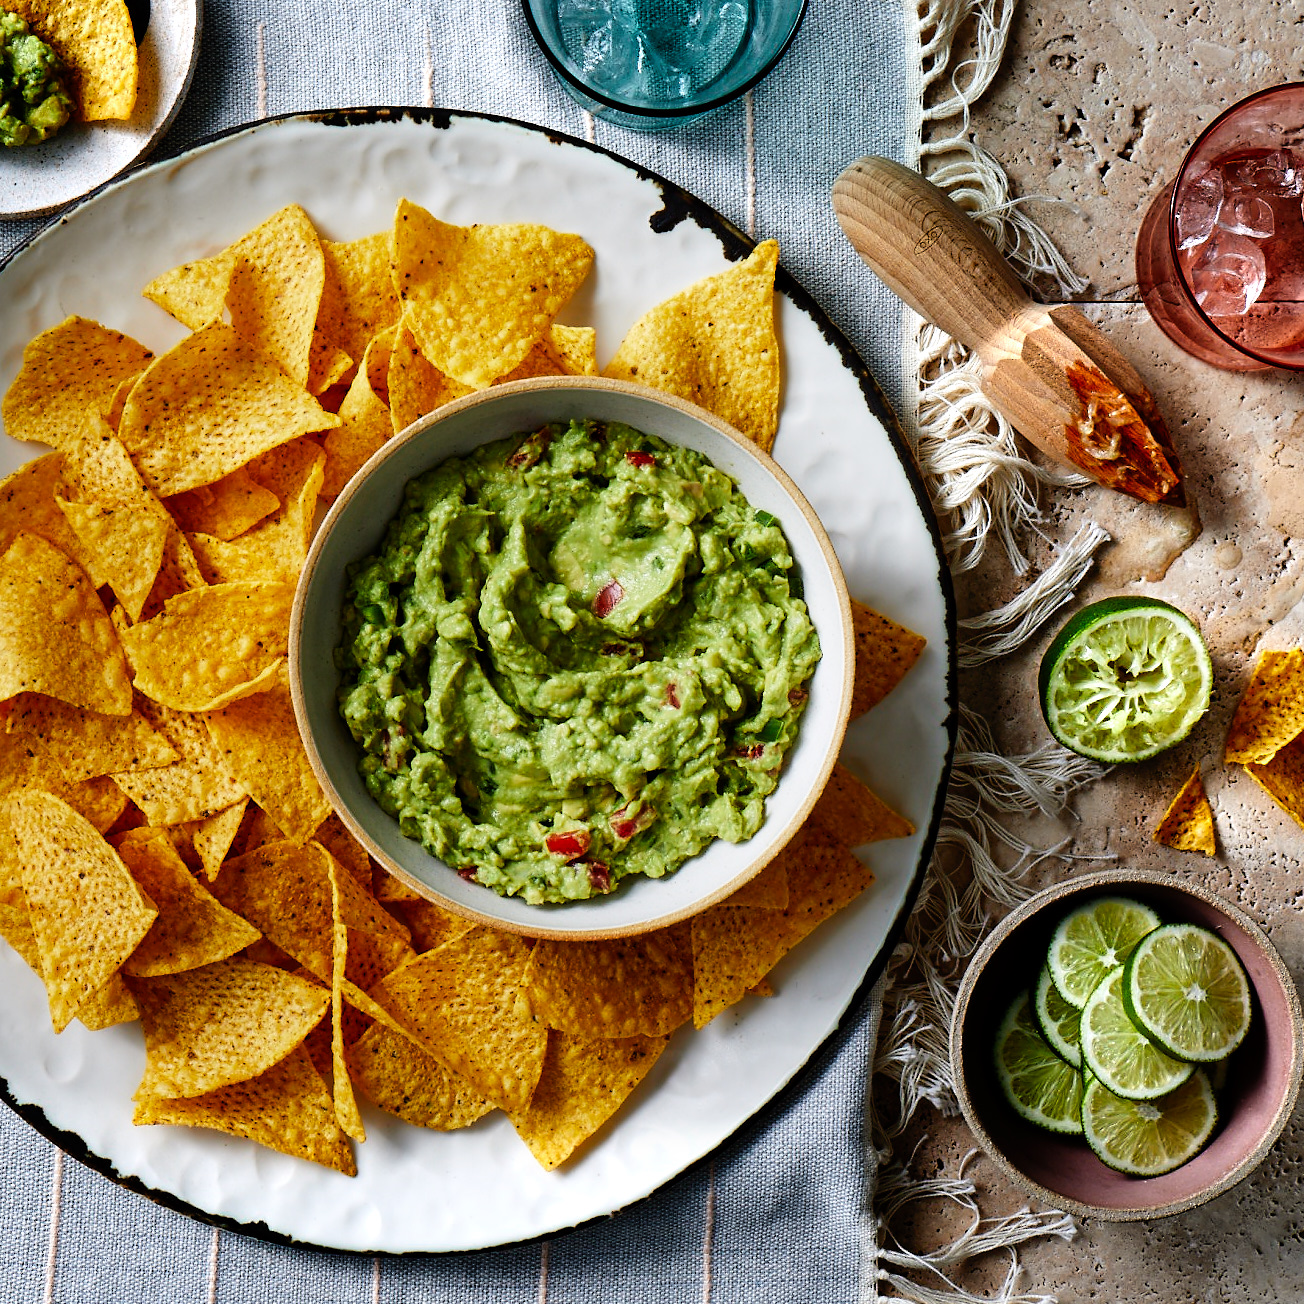 Tequila Guacamole Allrecipes Trusted Brands